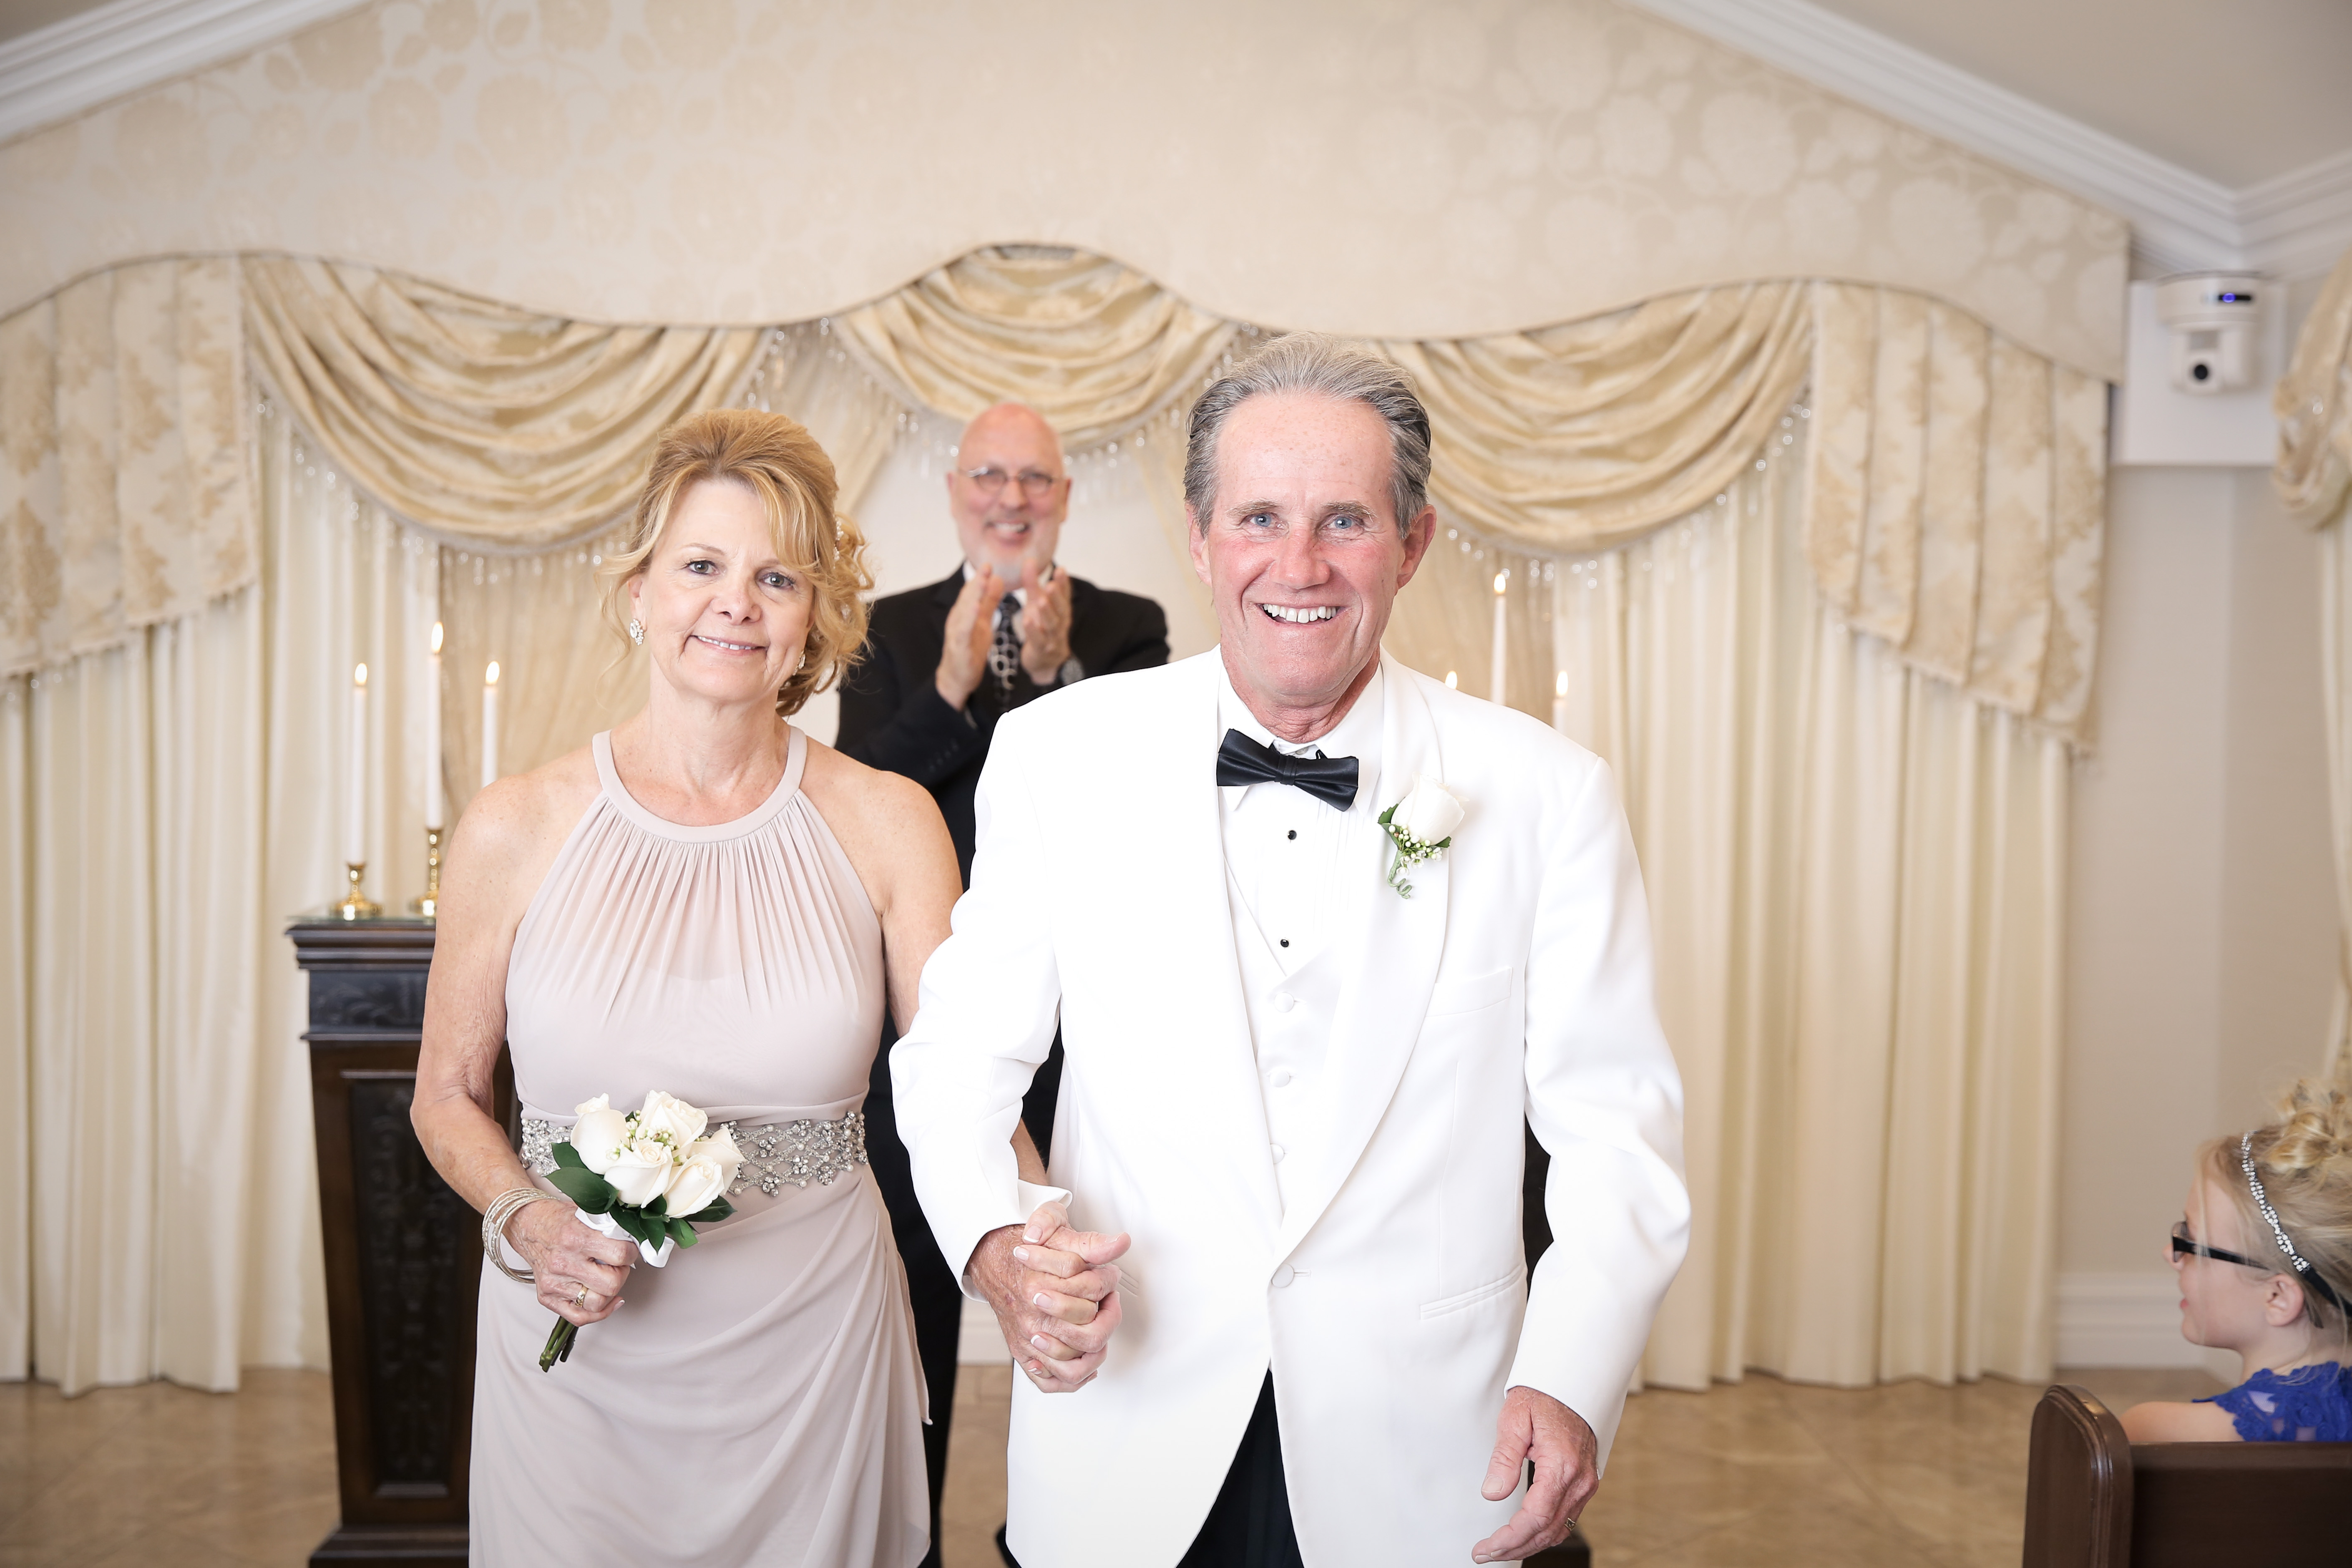 Chapel Of The Flowers Celebrates Love And Romance